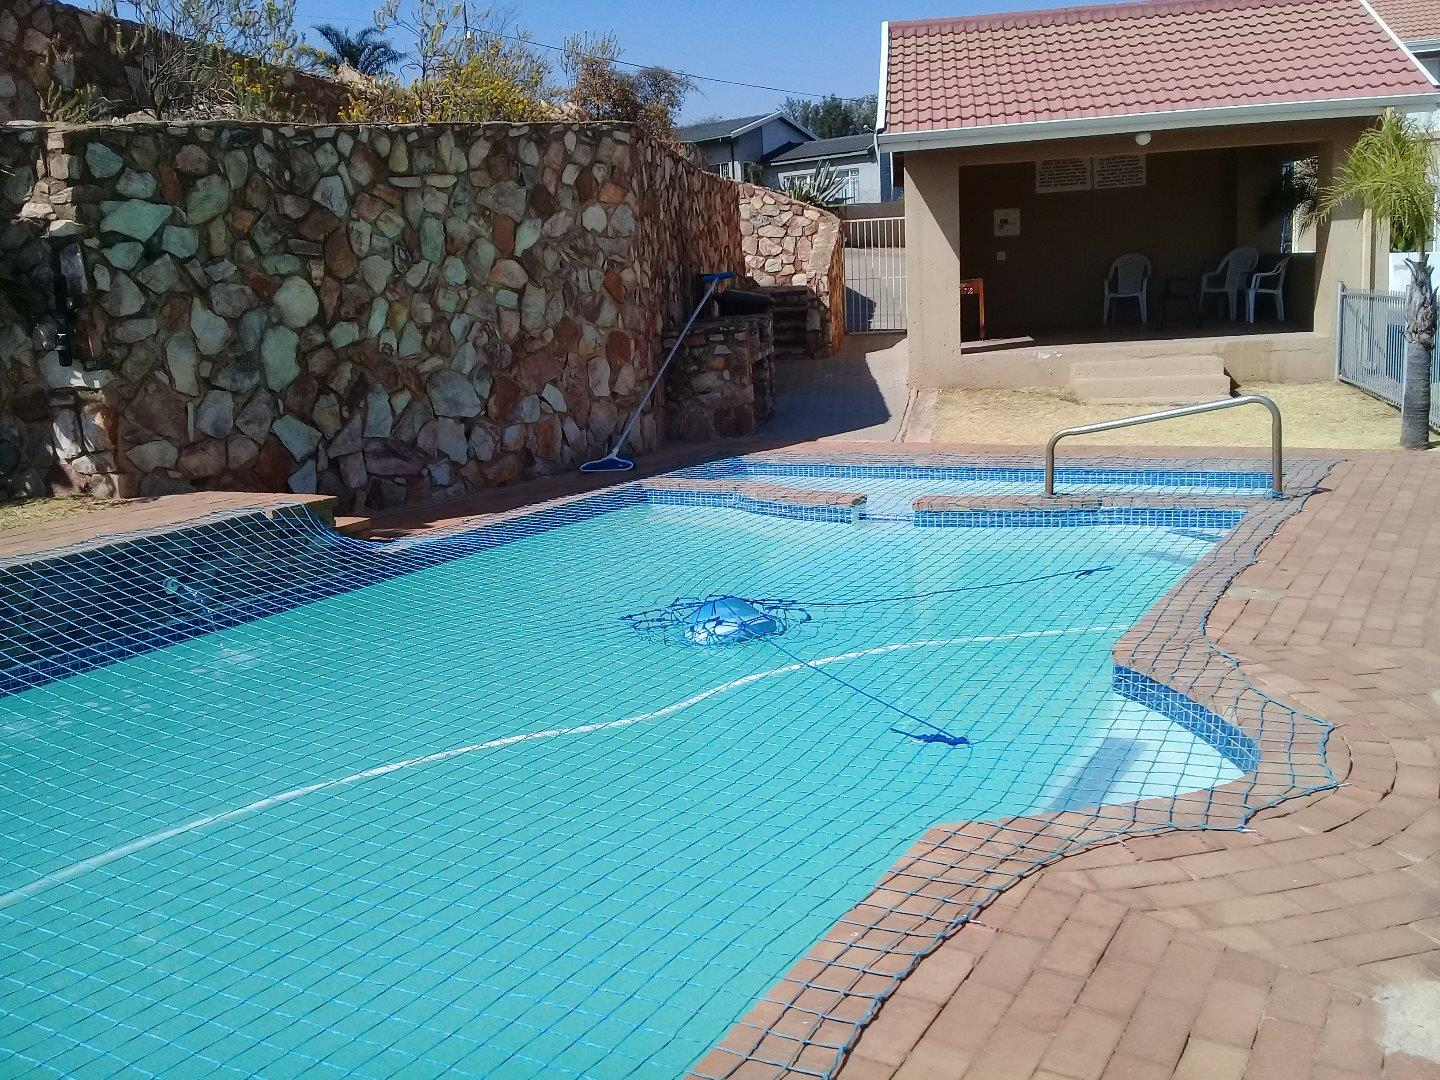 2 Bedroom Townhouse for Sale in Kenmare, Krugersdorp - Gauteng